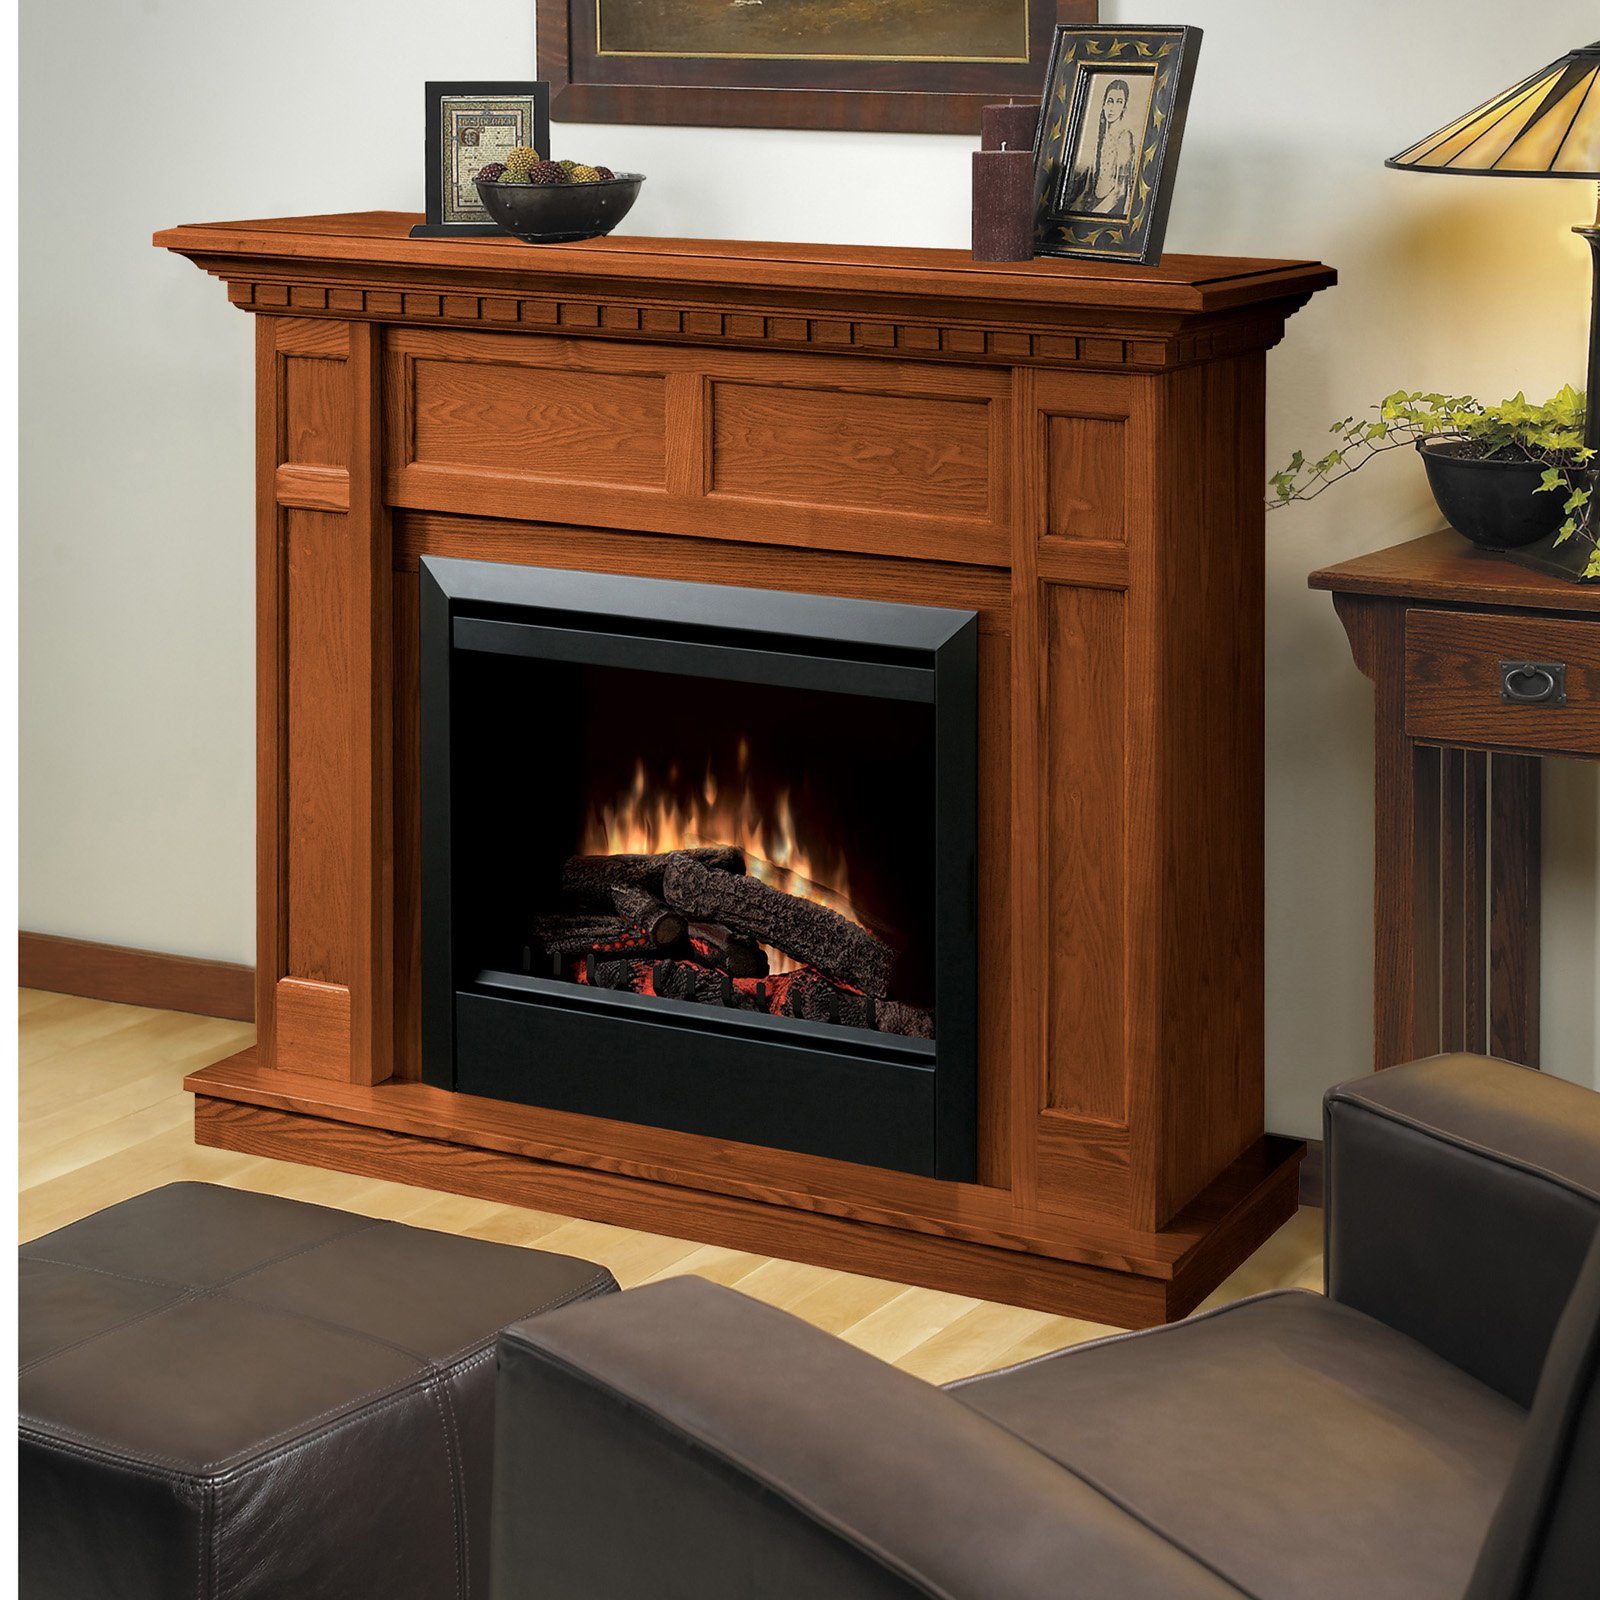 Fine Electric Built In Fireplaces Electric Wall Fireplaces Download Free Architecture Designs Scobabritishbridgeorg